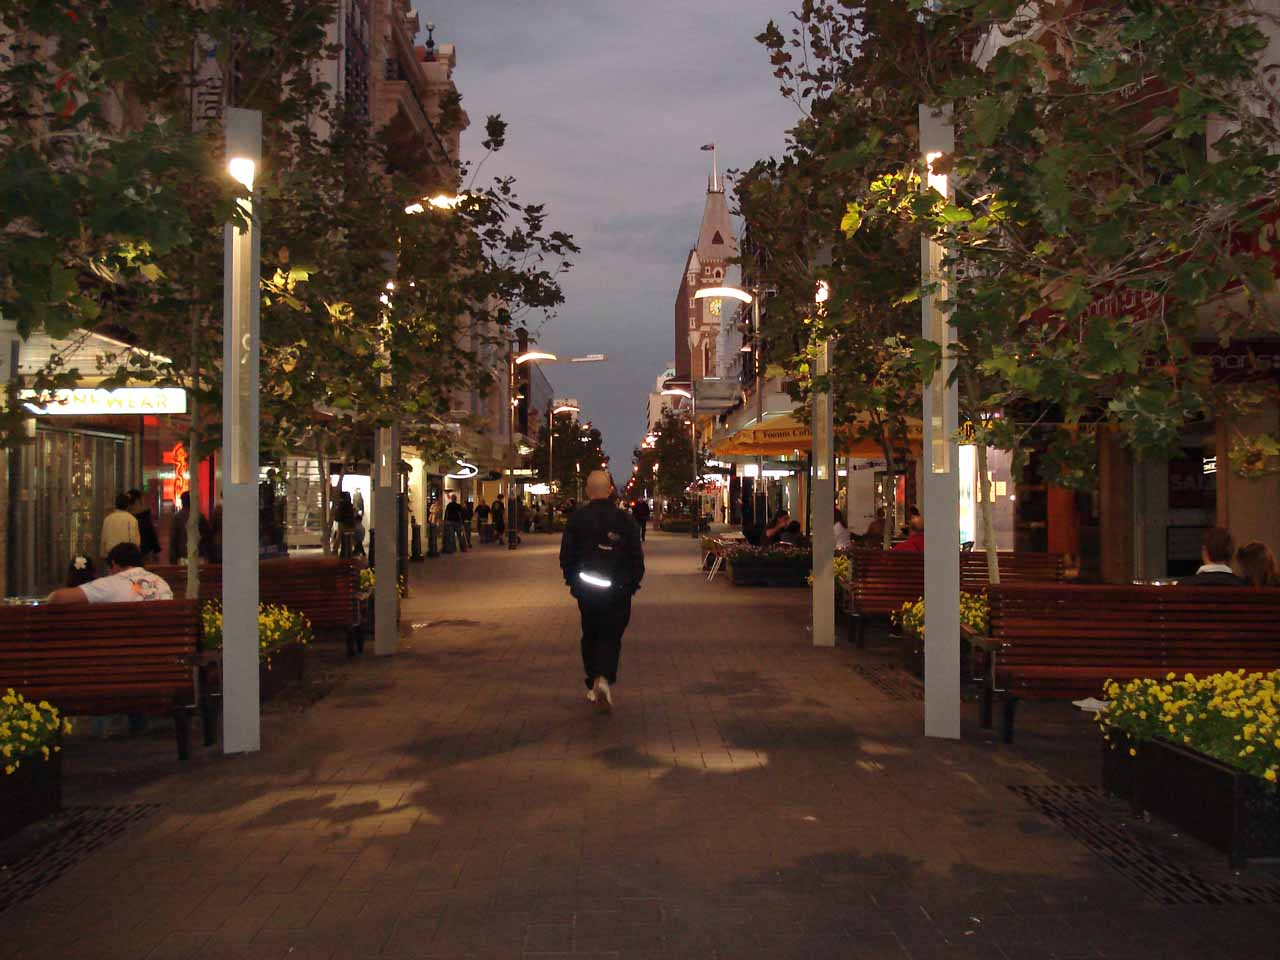 Walking about in the Perth CBD